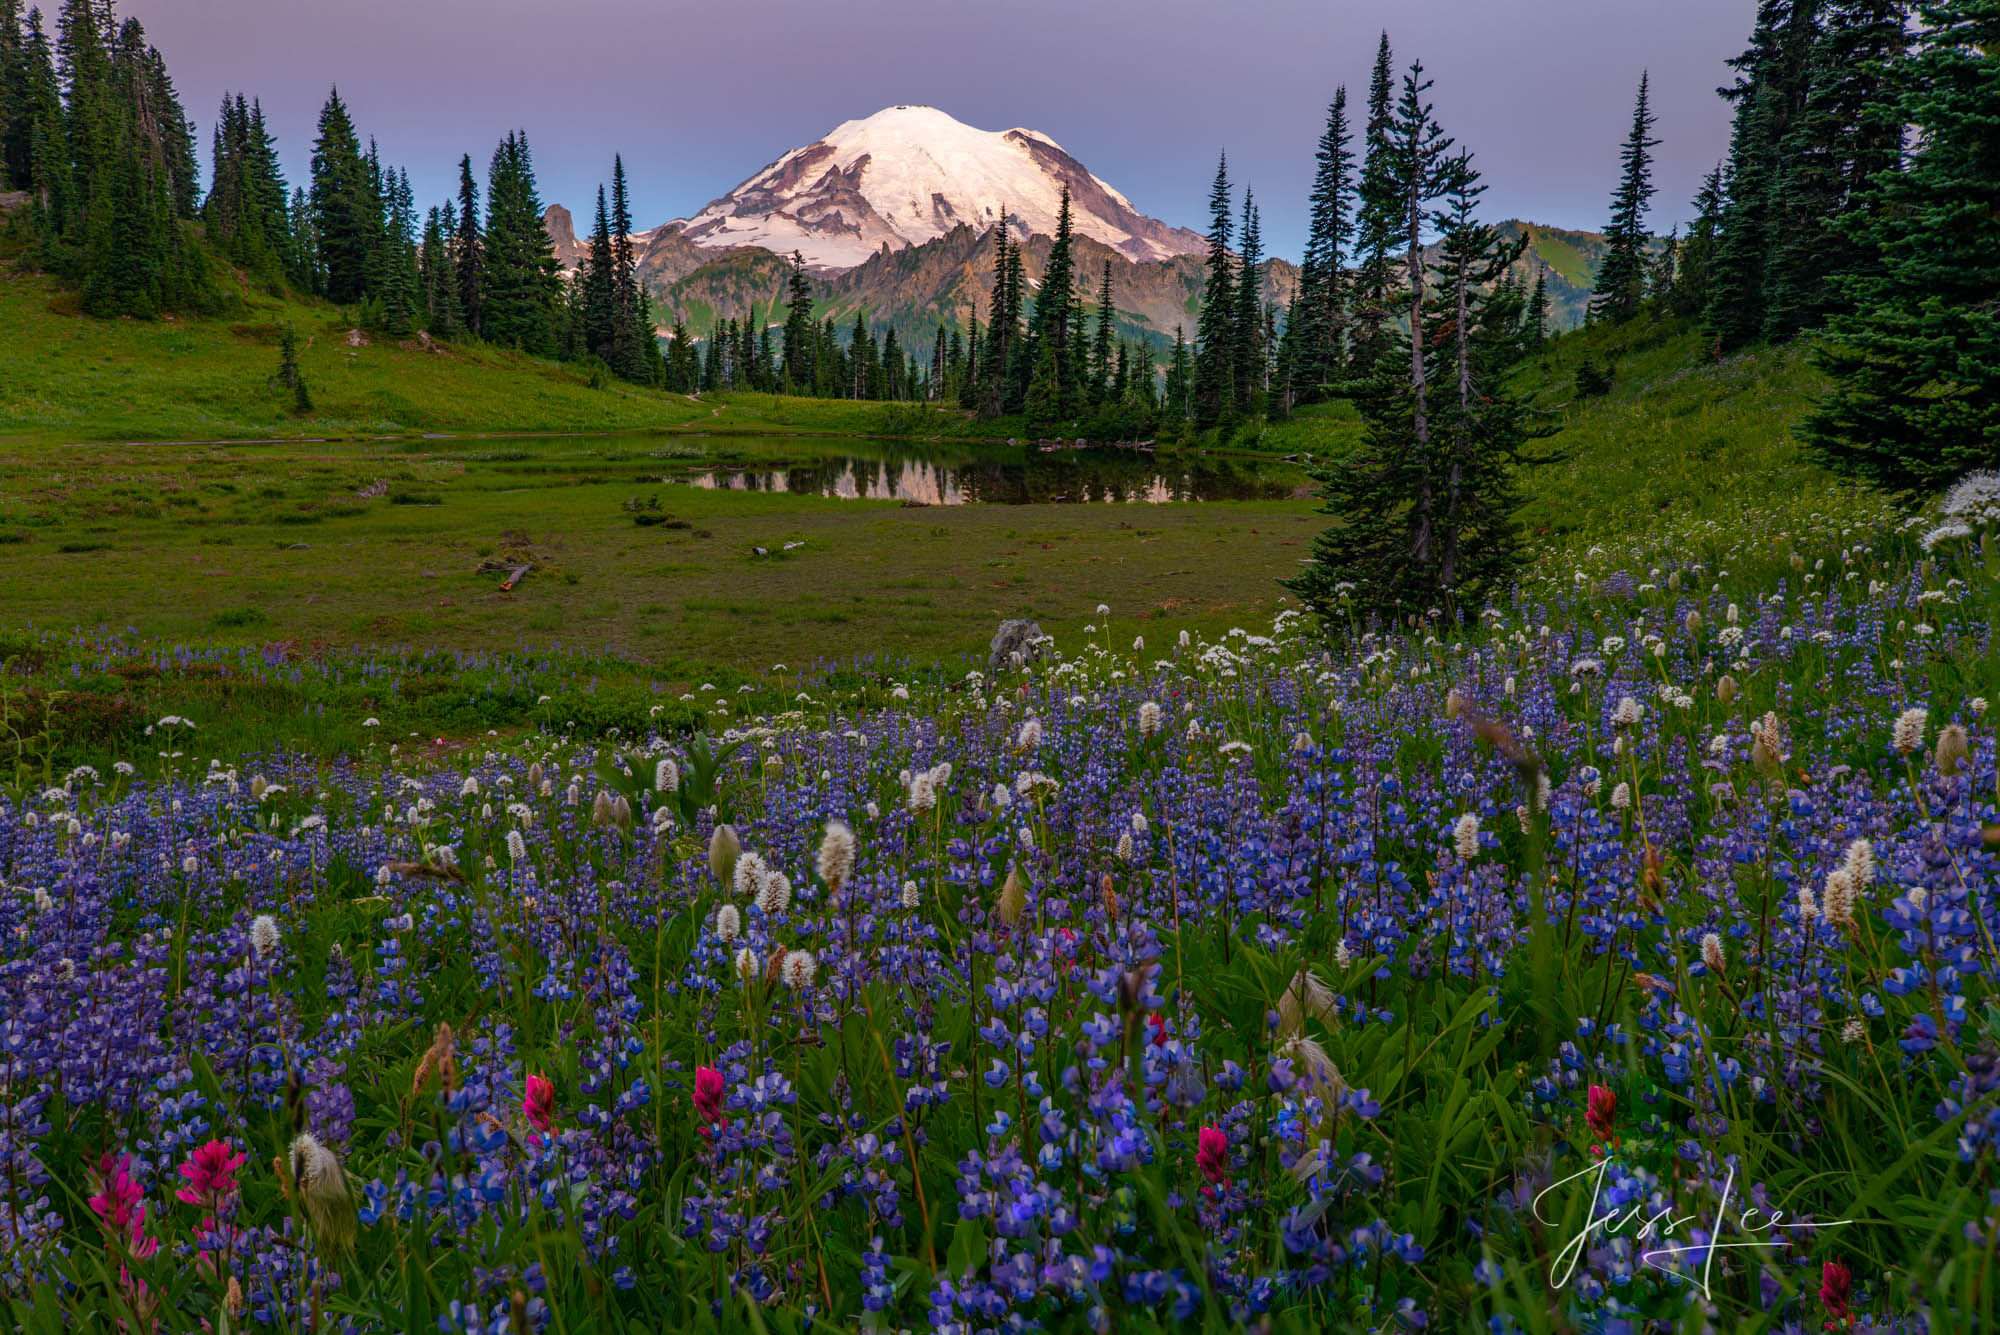 photo of Tipso Lake in Washington, Tipso Lake print, photo of Washington lake, Washington, Mount Rainier, lupines, flowers, photography in mountains, PNW, Pacific Northwest, flowers, summer in Washing, photo